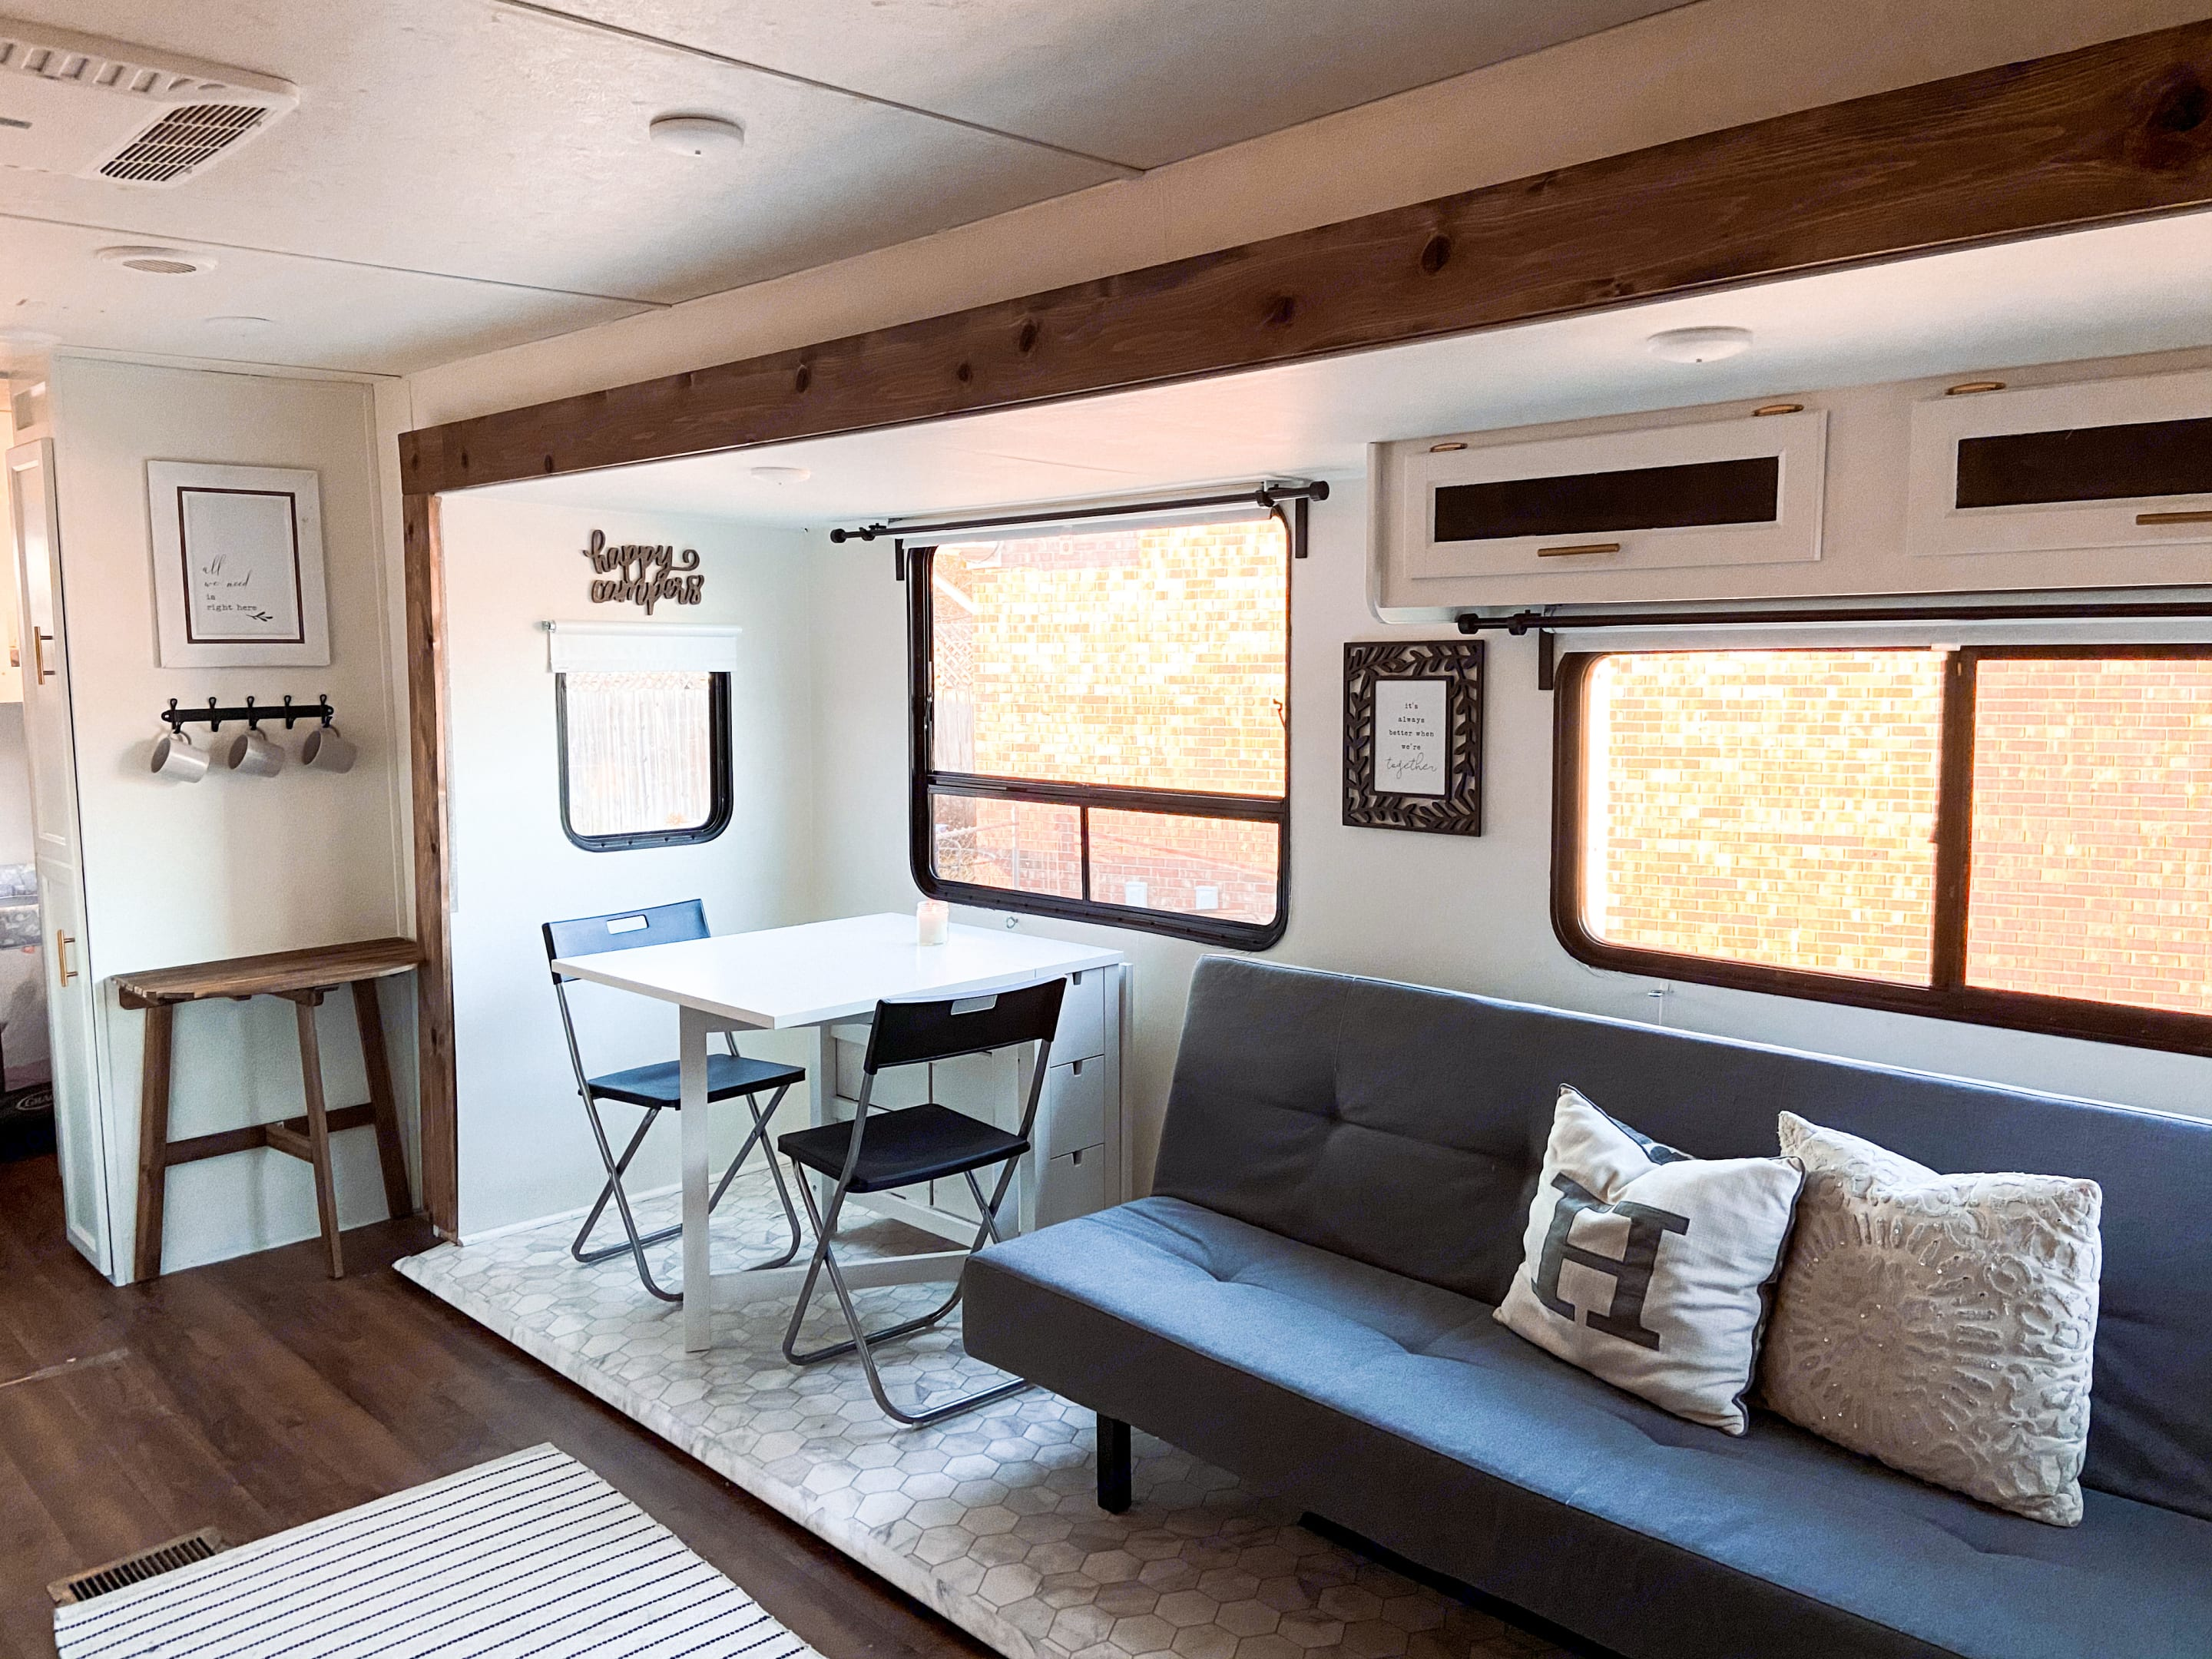 Living area with extendable dining table and futon/couch.. Coachmen Catalina 2017